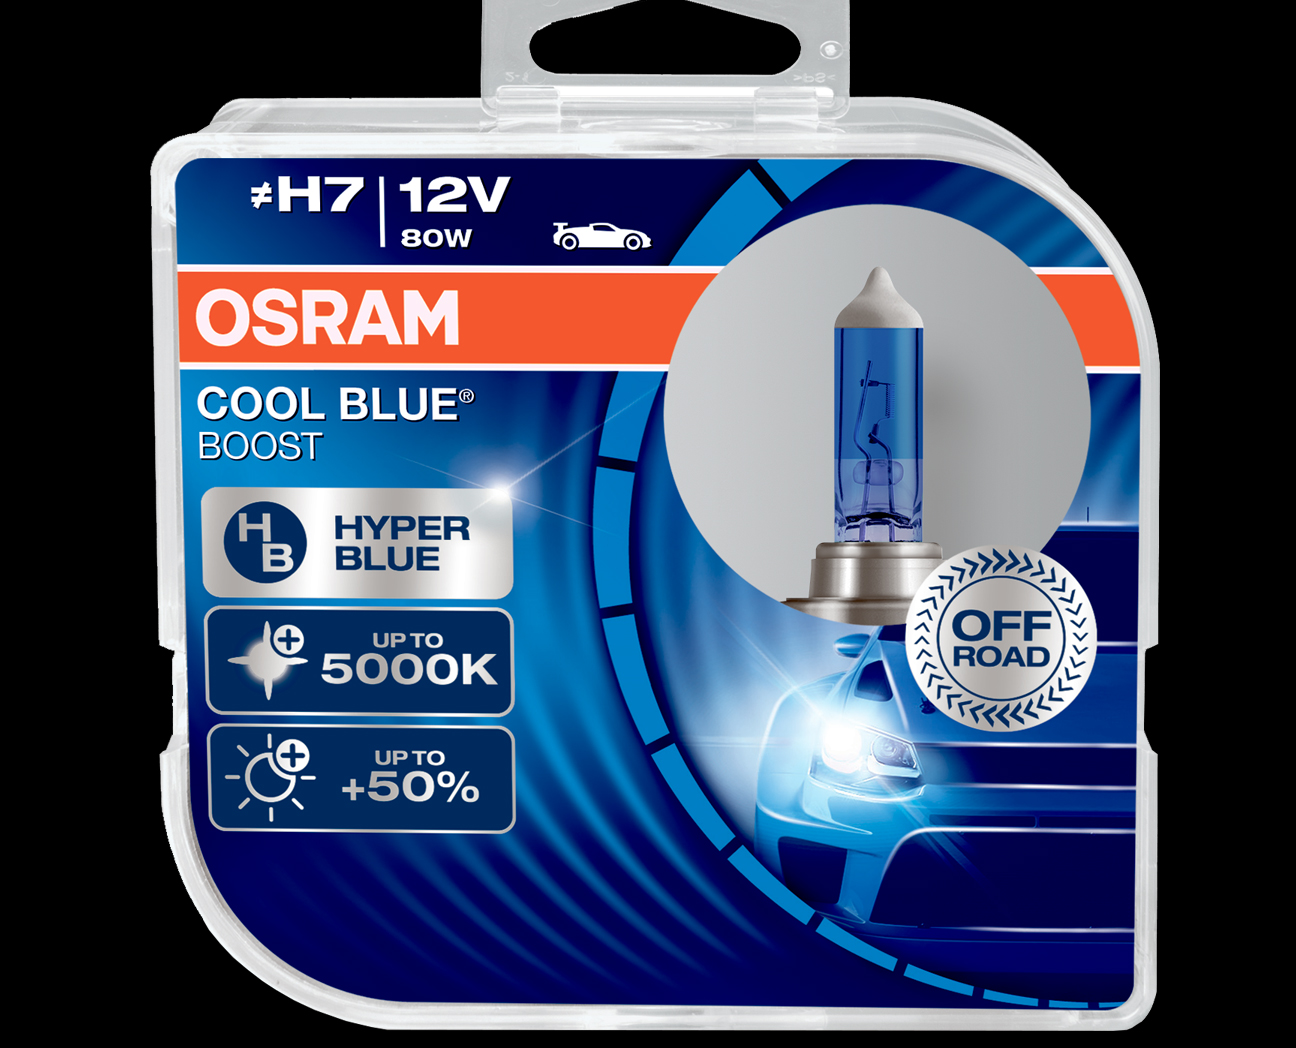 OSRAM COOL BLUE BOOST / COOL BLUE HYPER